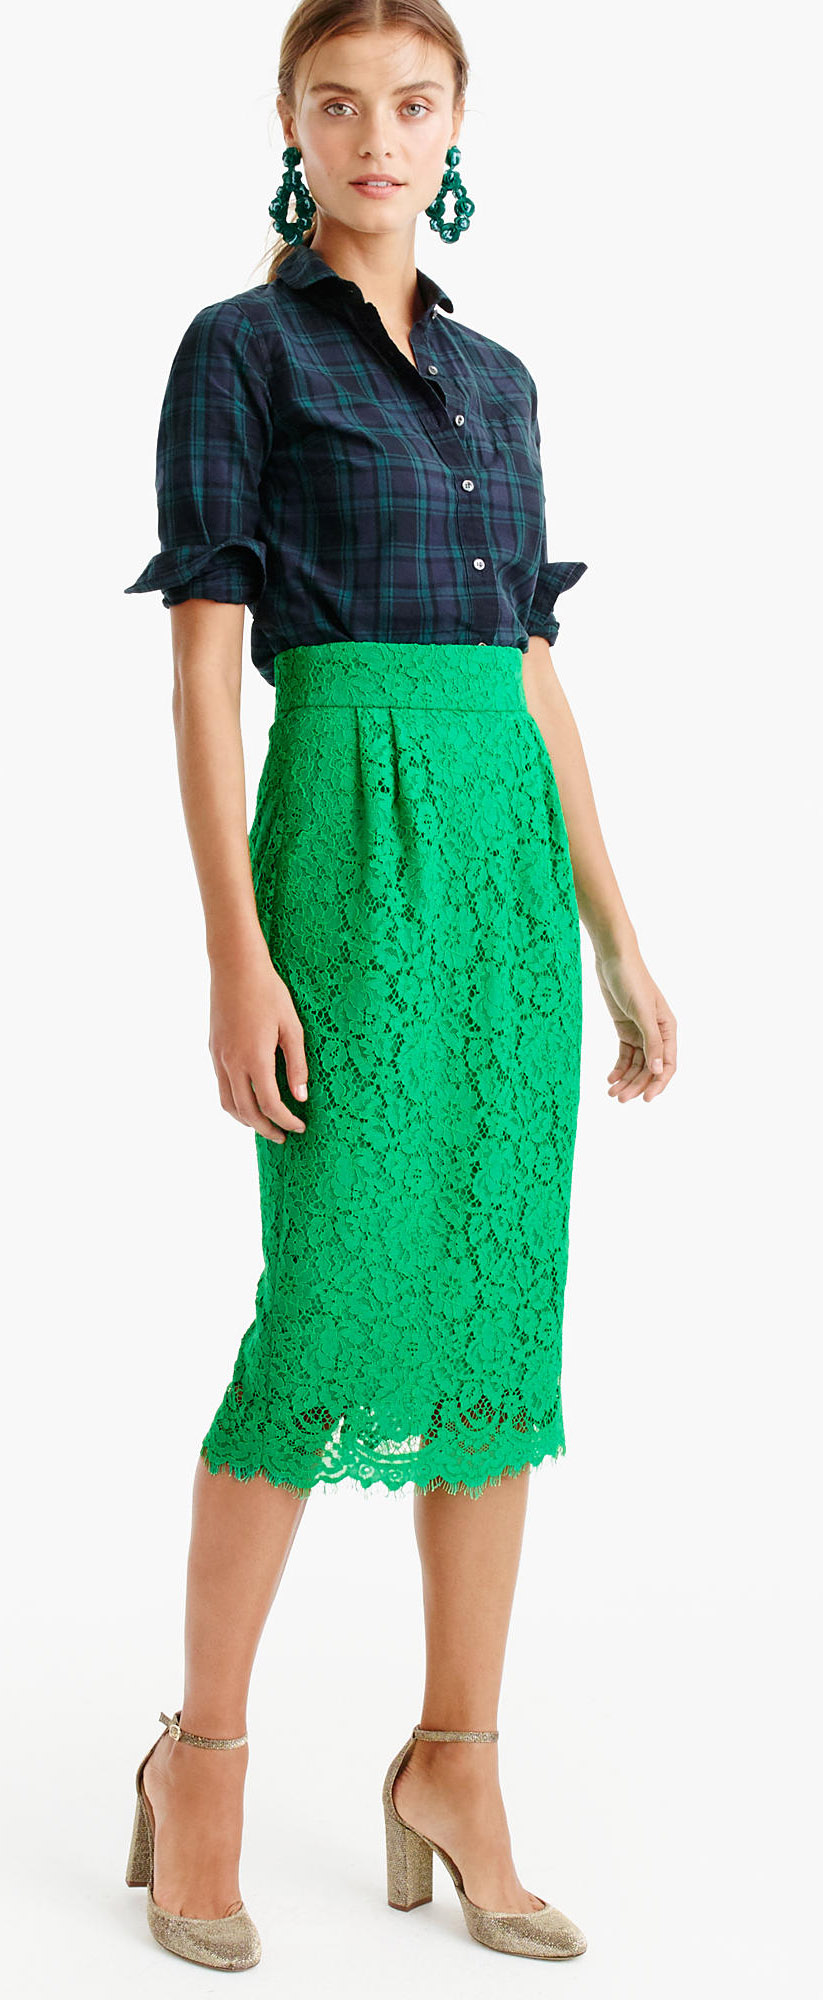 green-emerald-midi-skirt-lace-blue-navy-plaid-shirt-earrings-hairr-pony-tan-shoe-pumps-gold-fall-winter-holiday-dinner.jpg